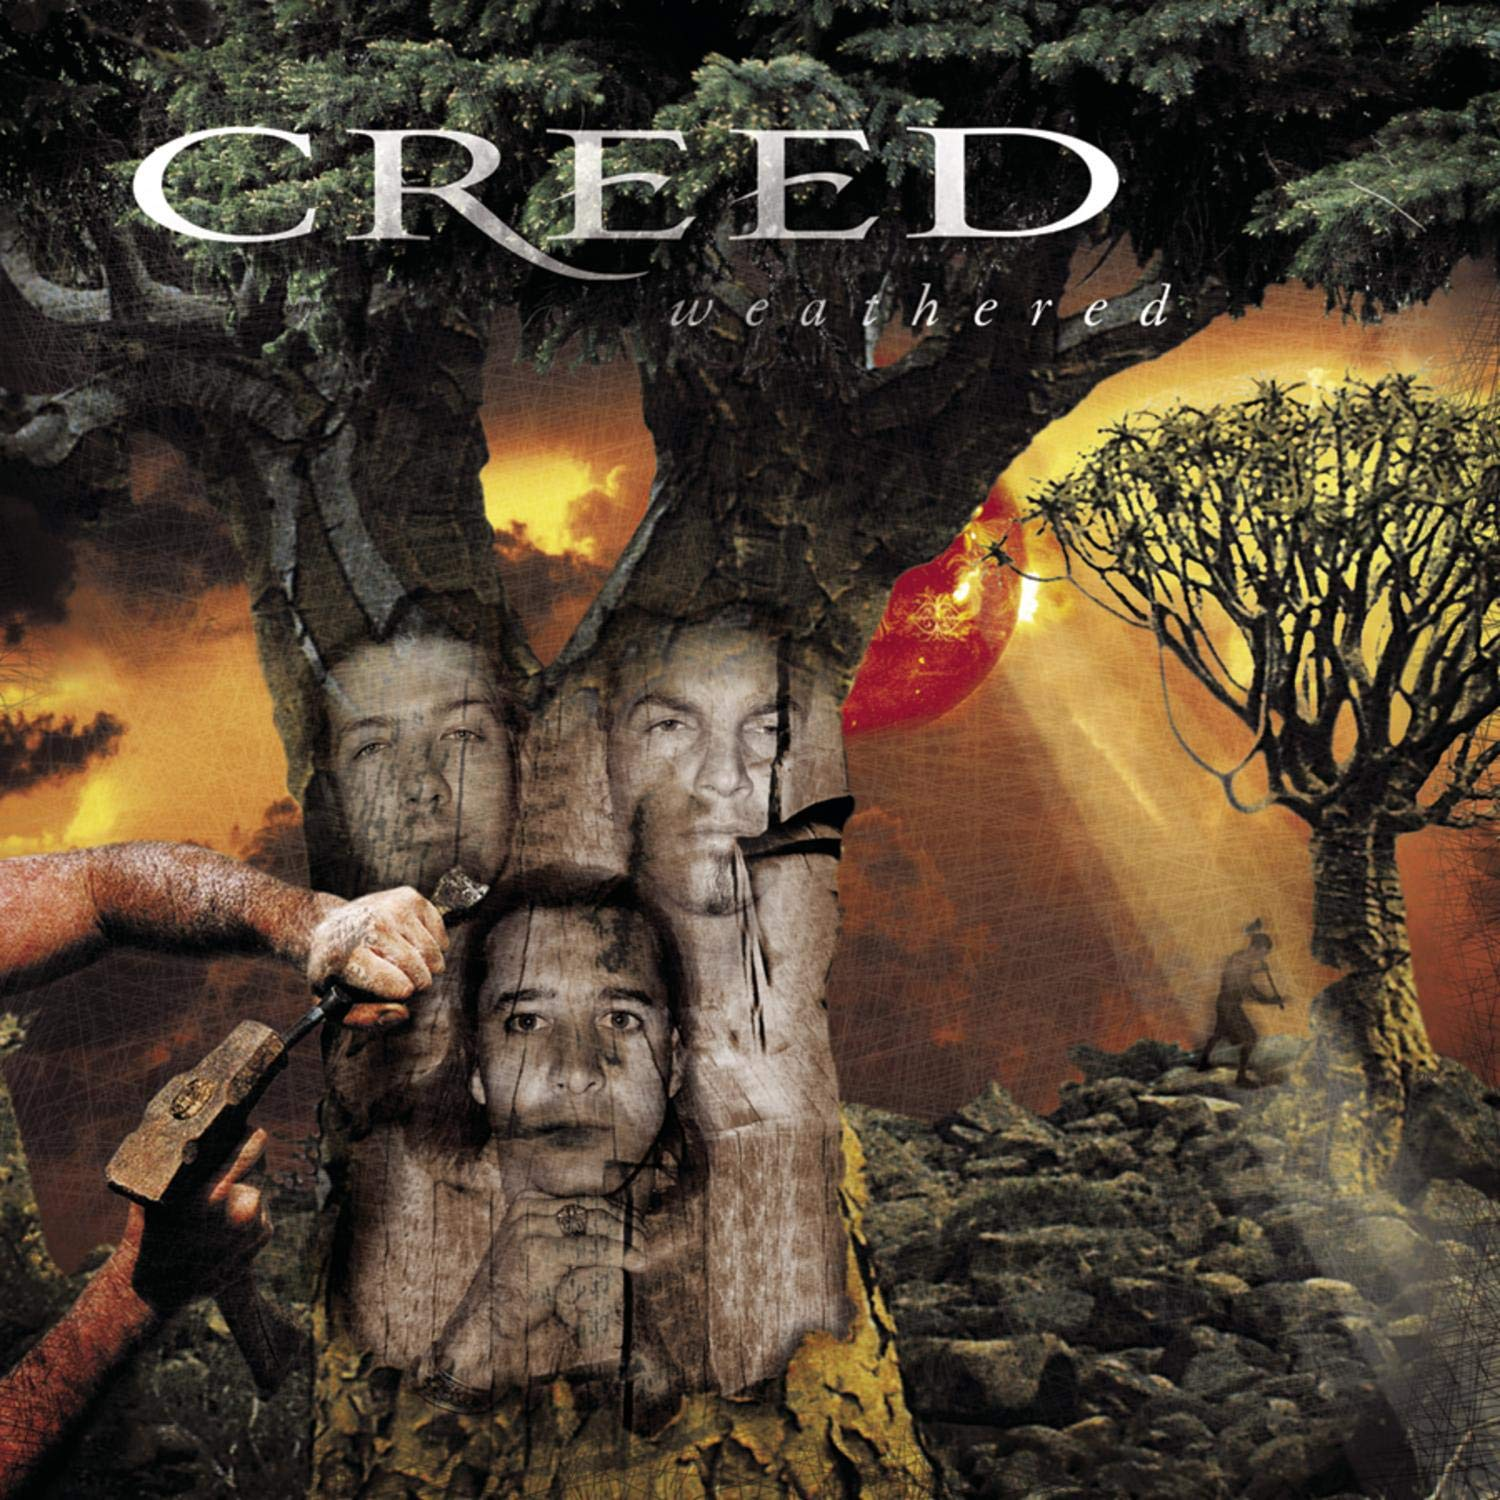 Creed, Weathered